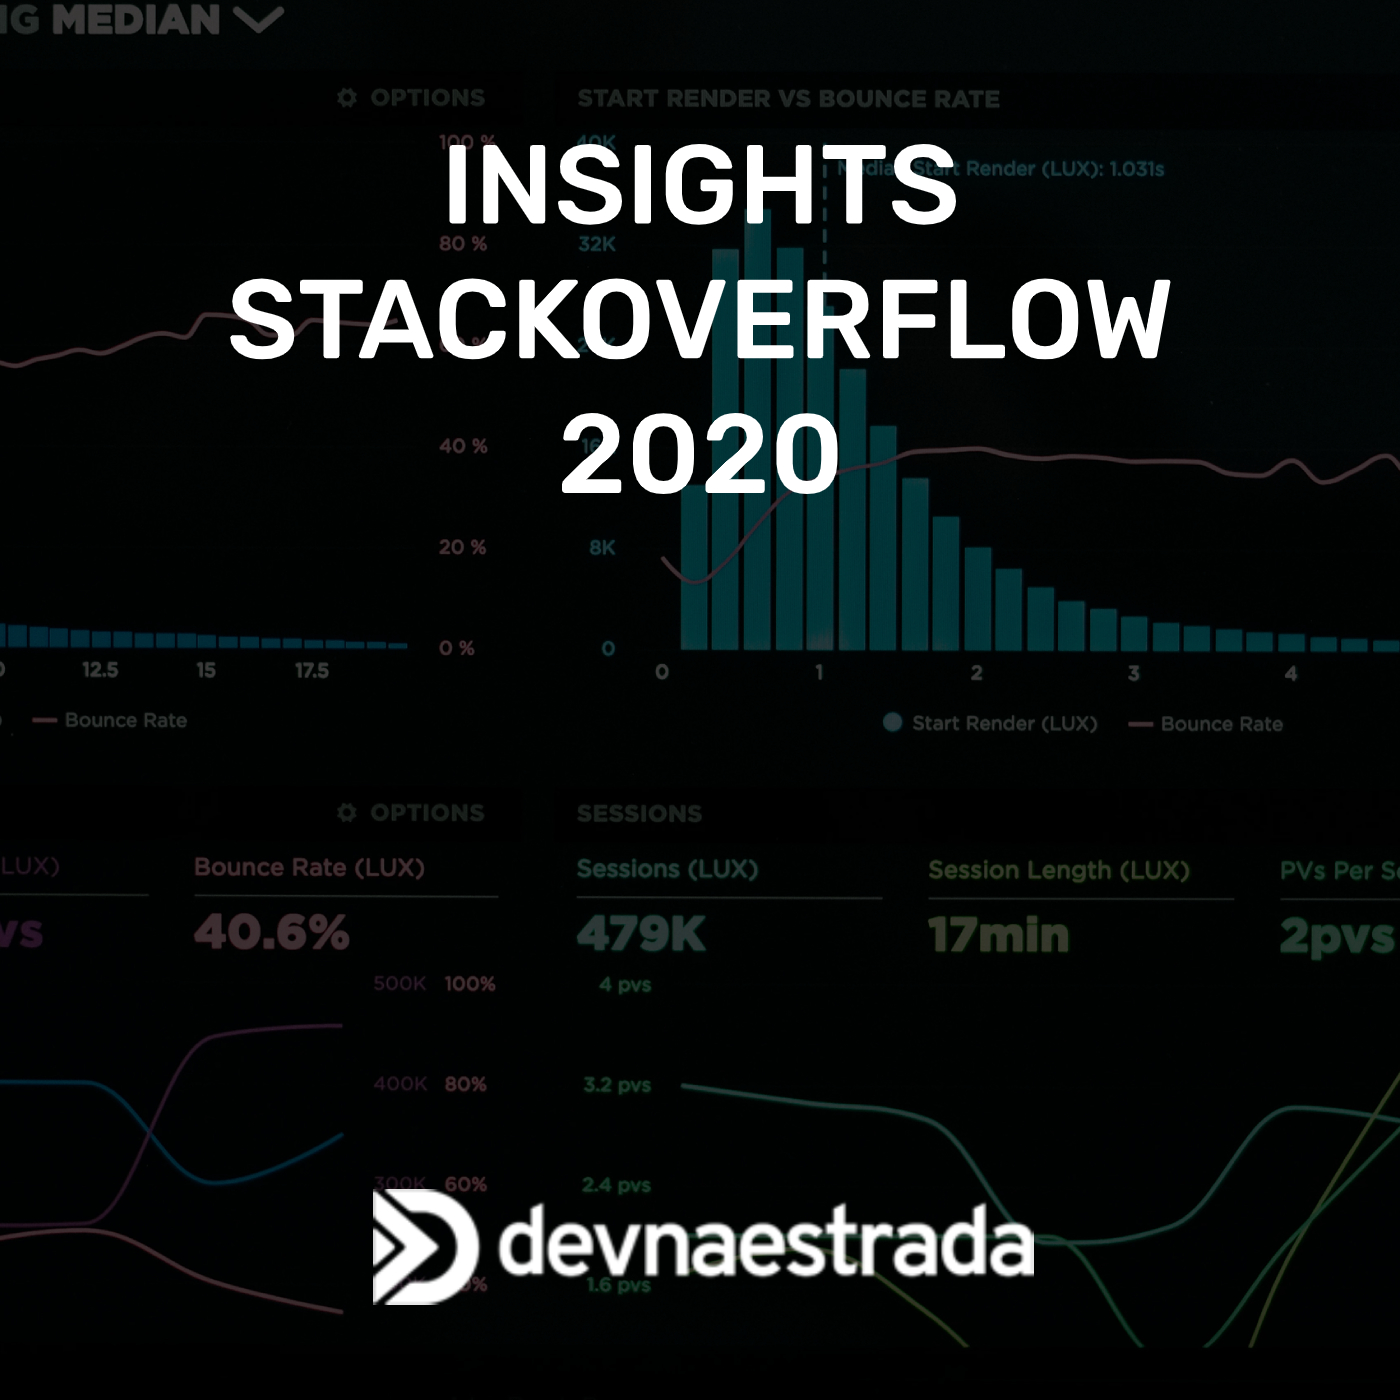 Insights Stackoverflow 2020